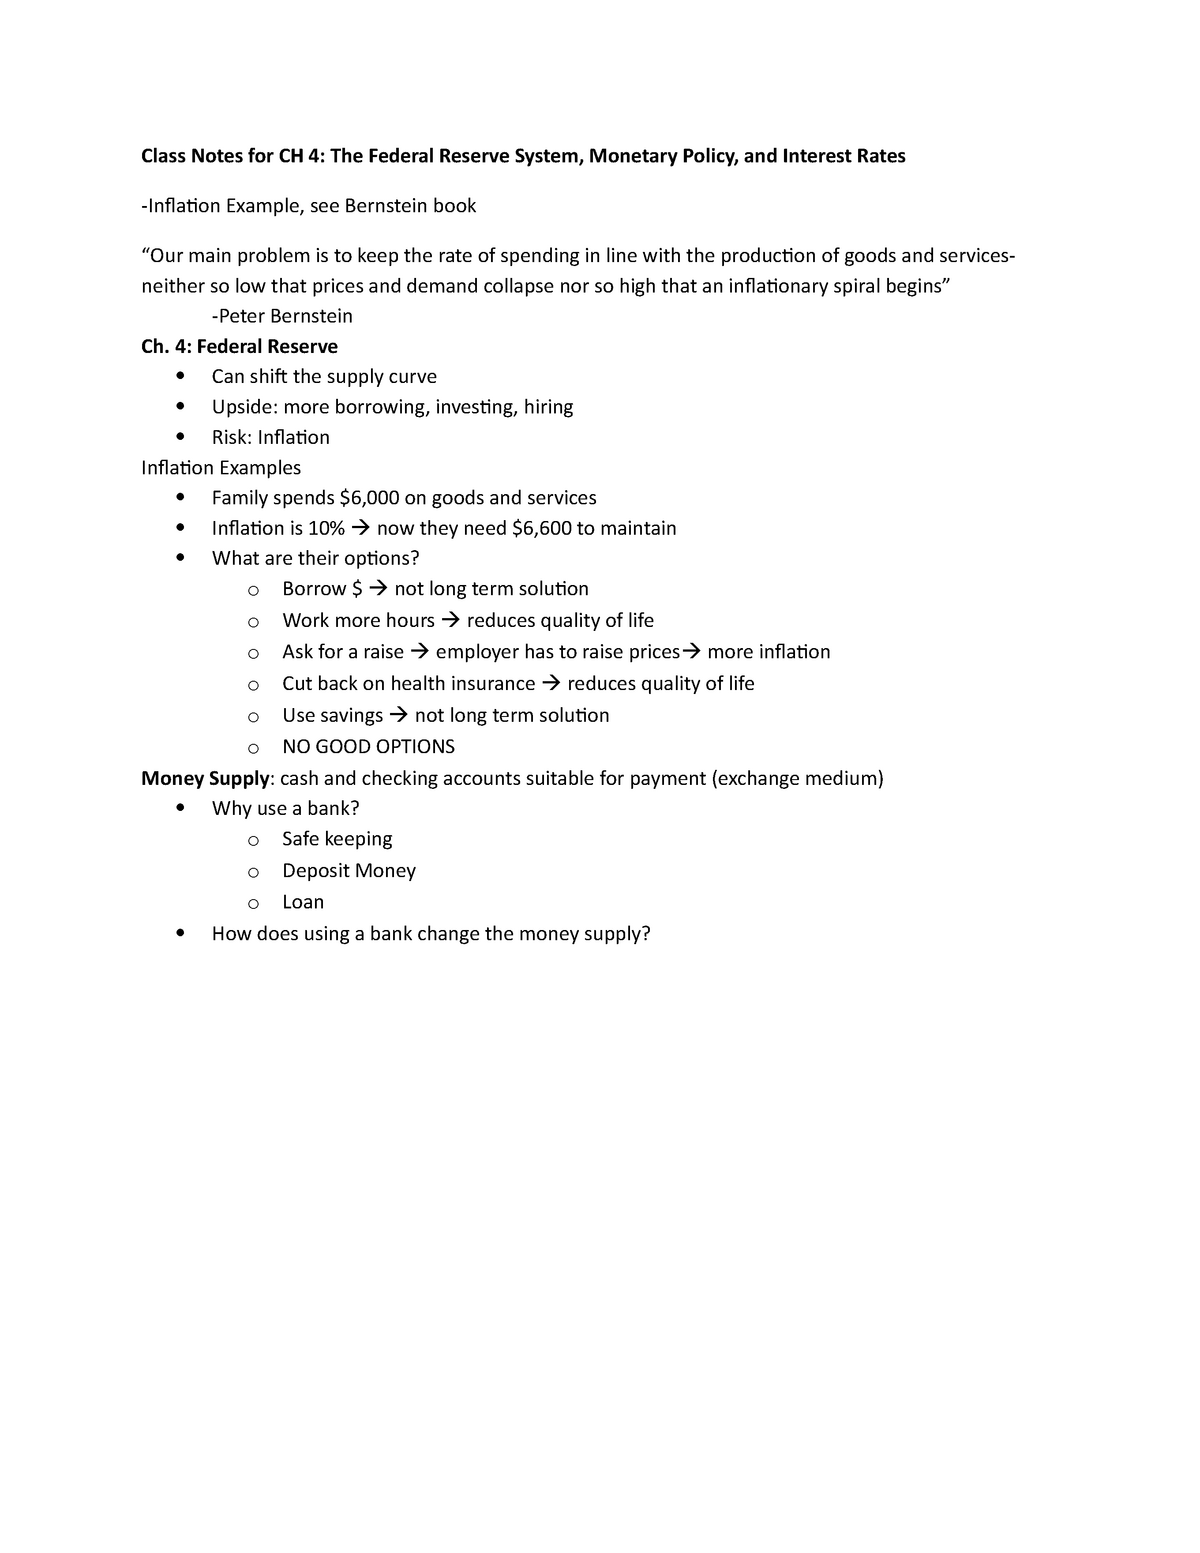 Class Notes for CH 4(1) Summary - book